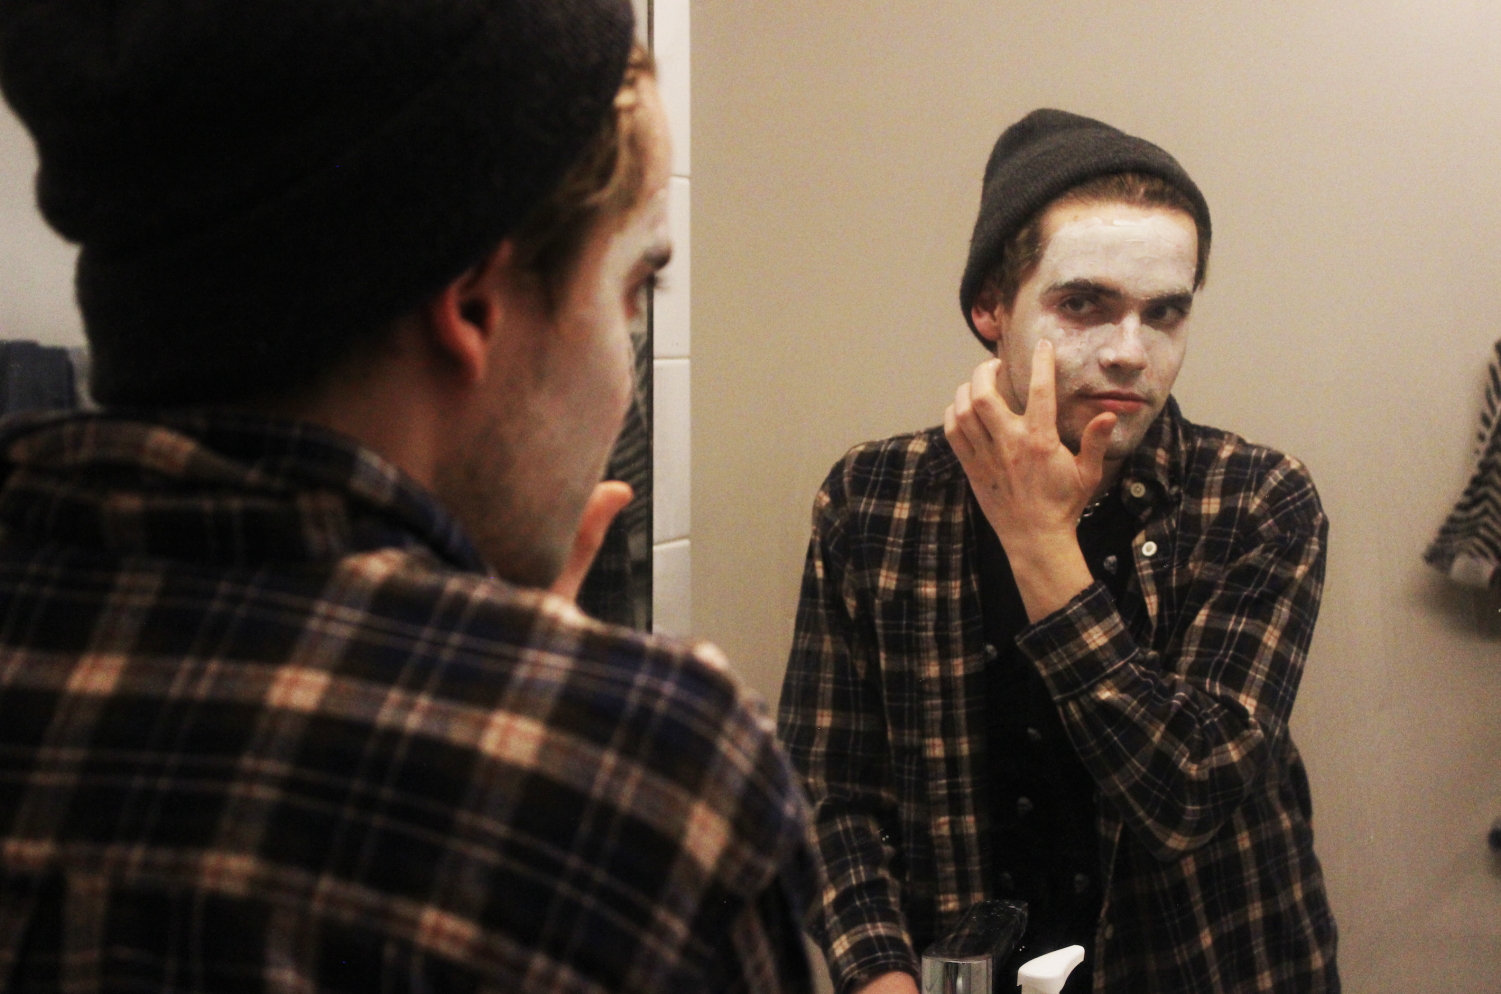 Luke Osborn winding down with a Glossier face mask.